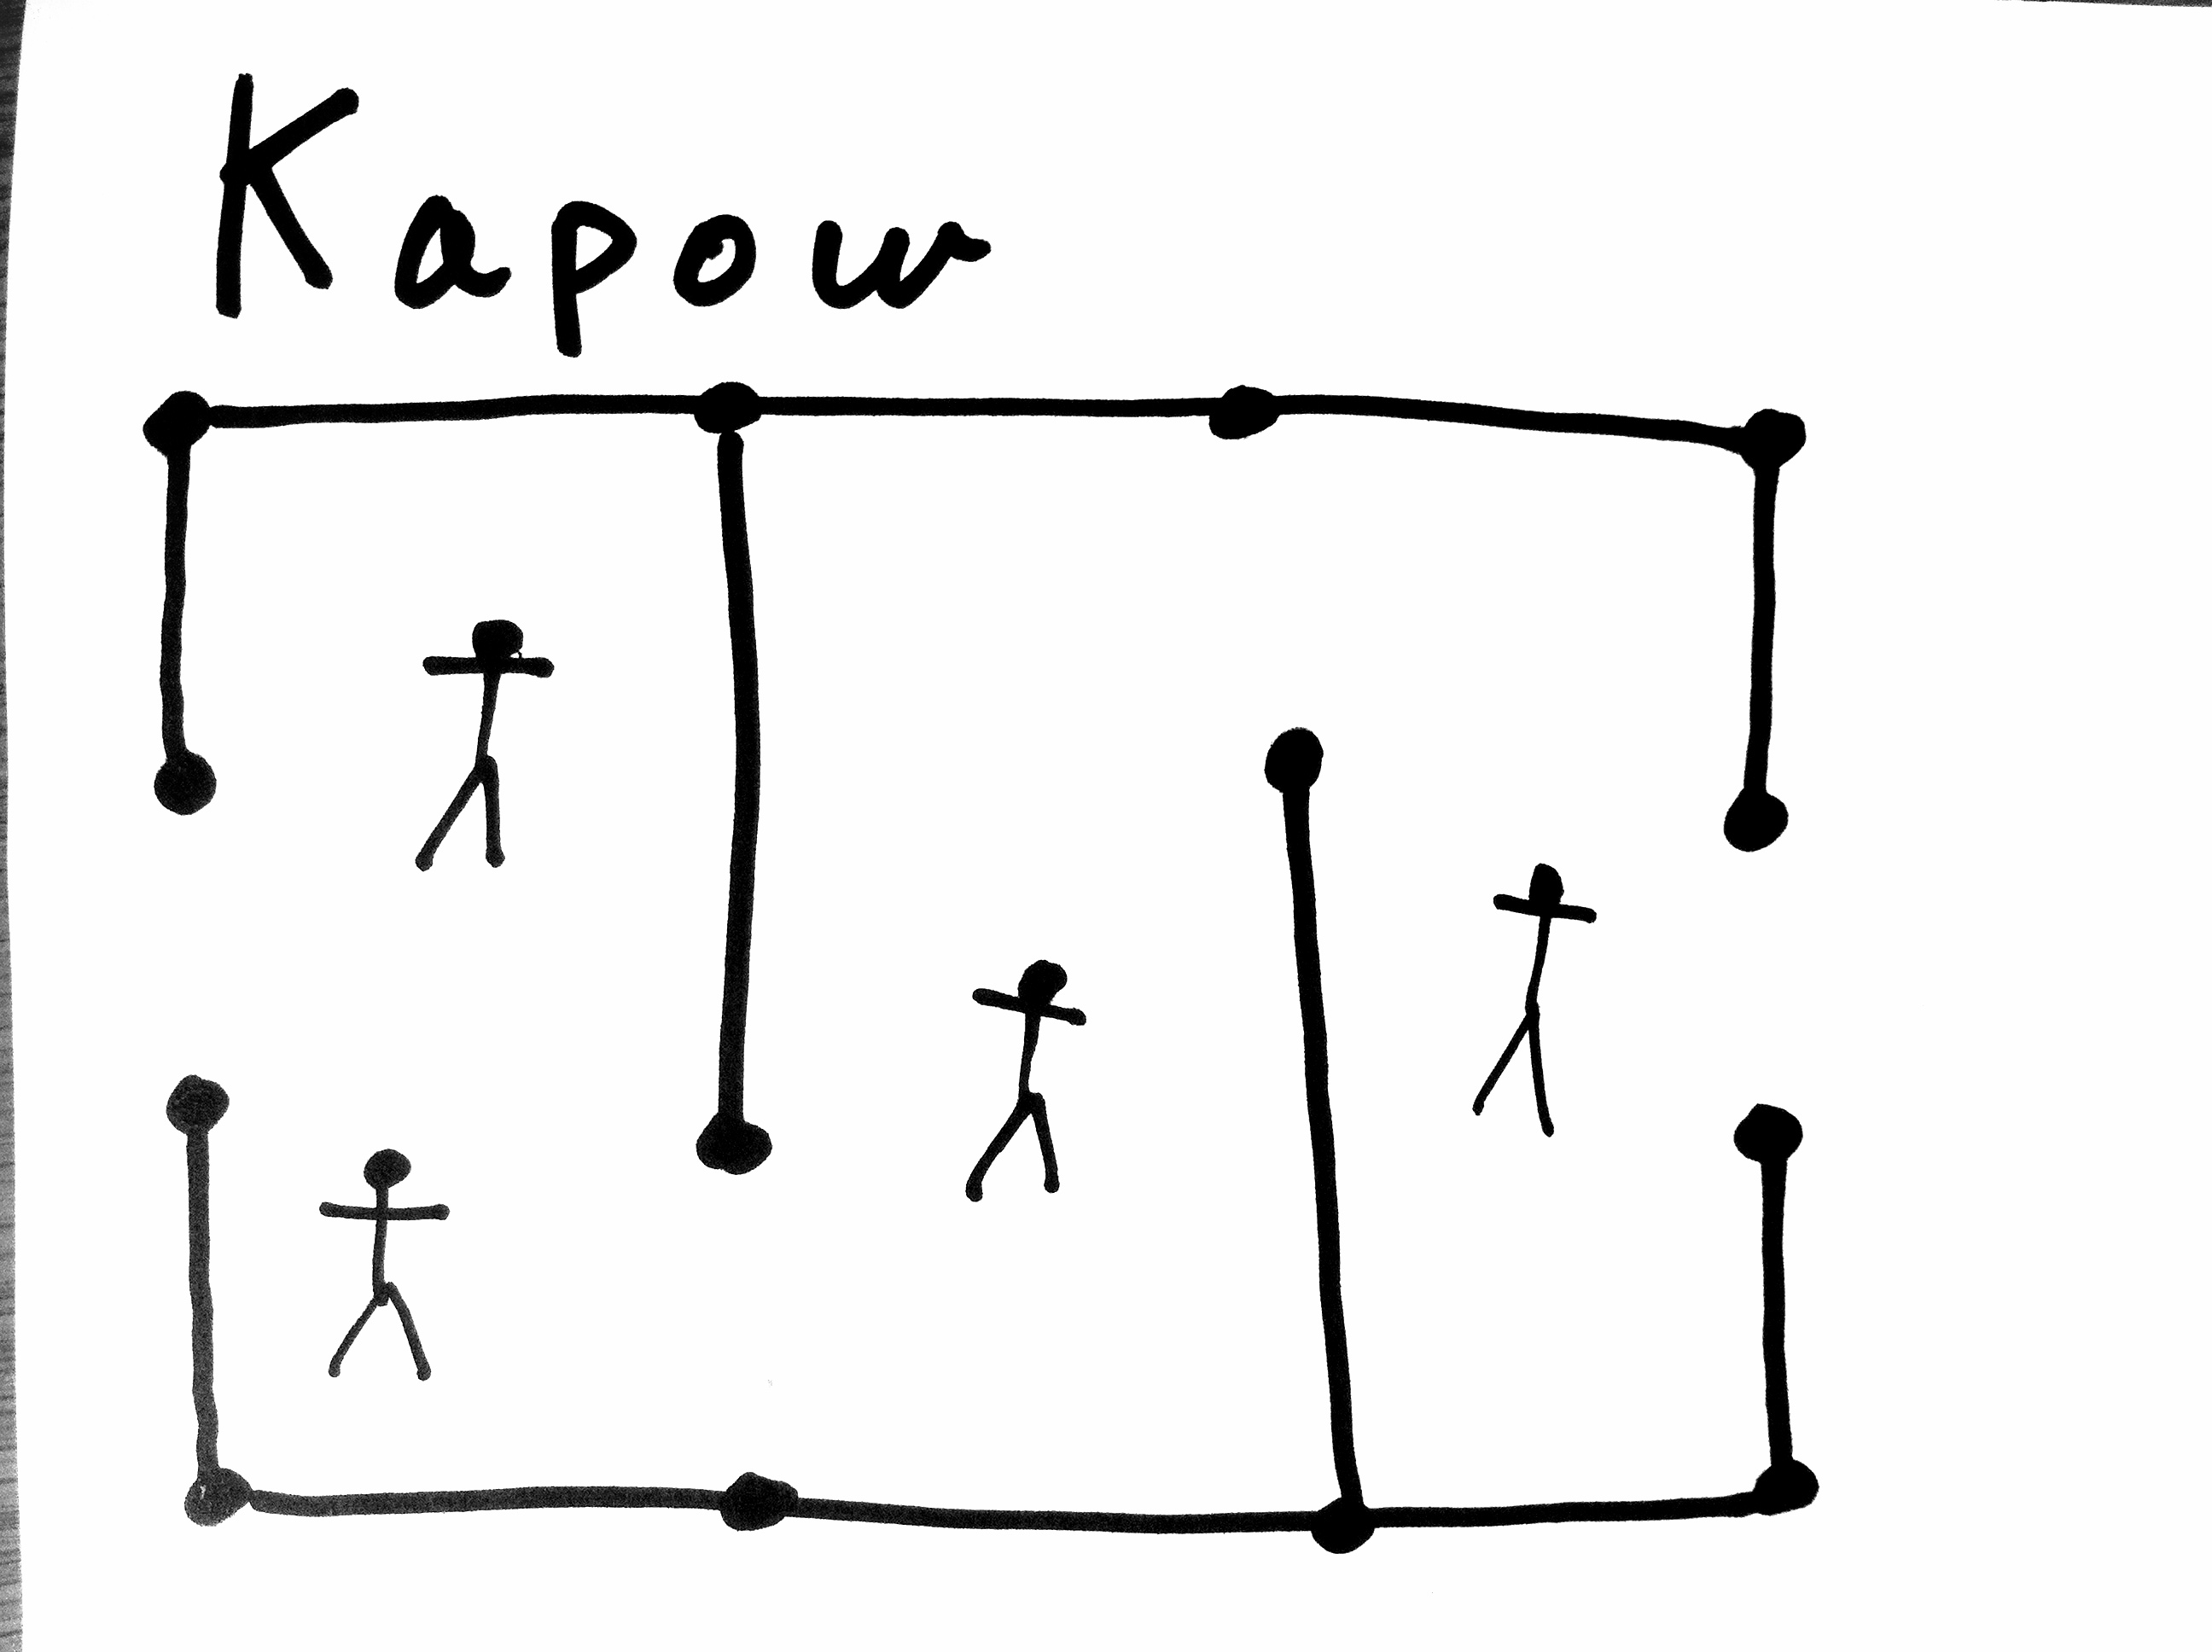 Kapow field drawing